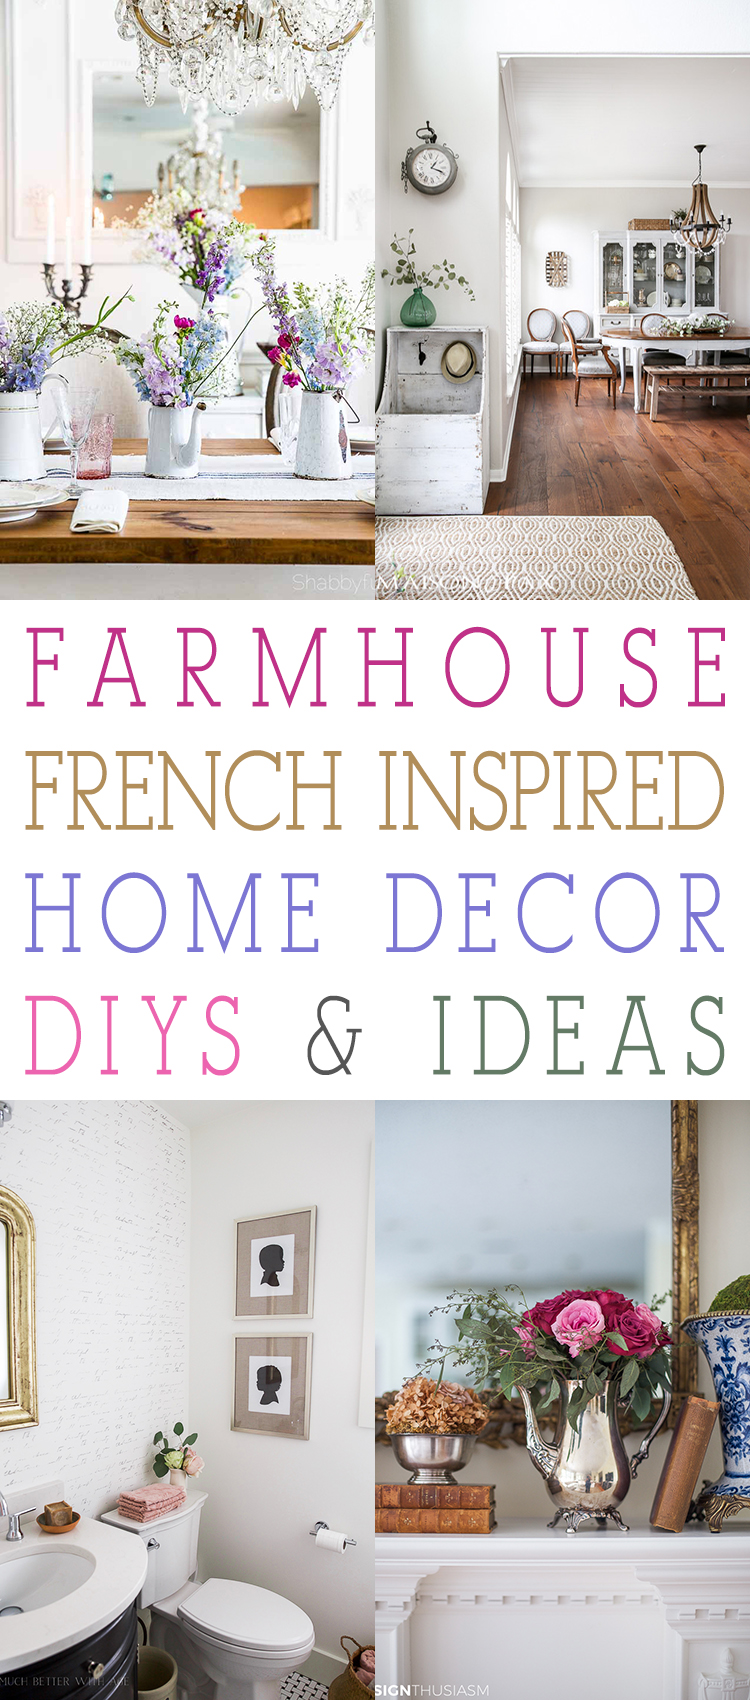 Sure Hope You Enjoy This Collection Of Farmhouse French Inspired Home Decor  Ideas And DIYS. Pour Yourself A Cup Of Your Favorite Brew And Maybe Snack  On A ...